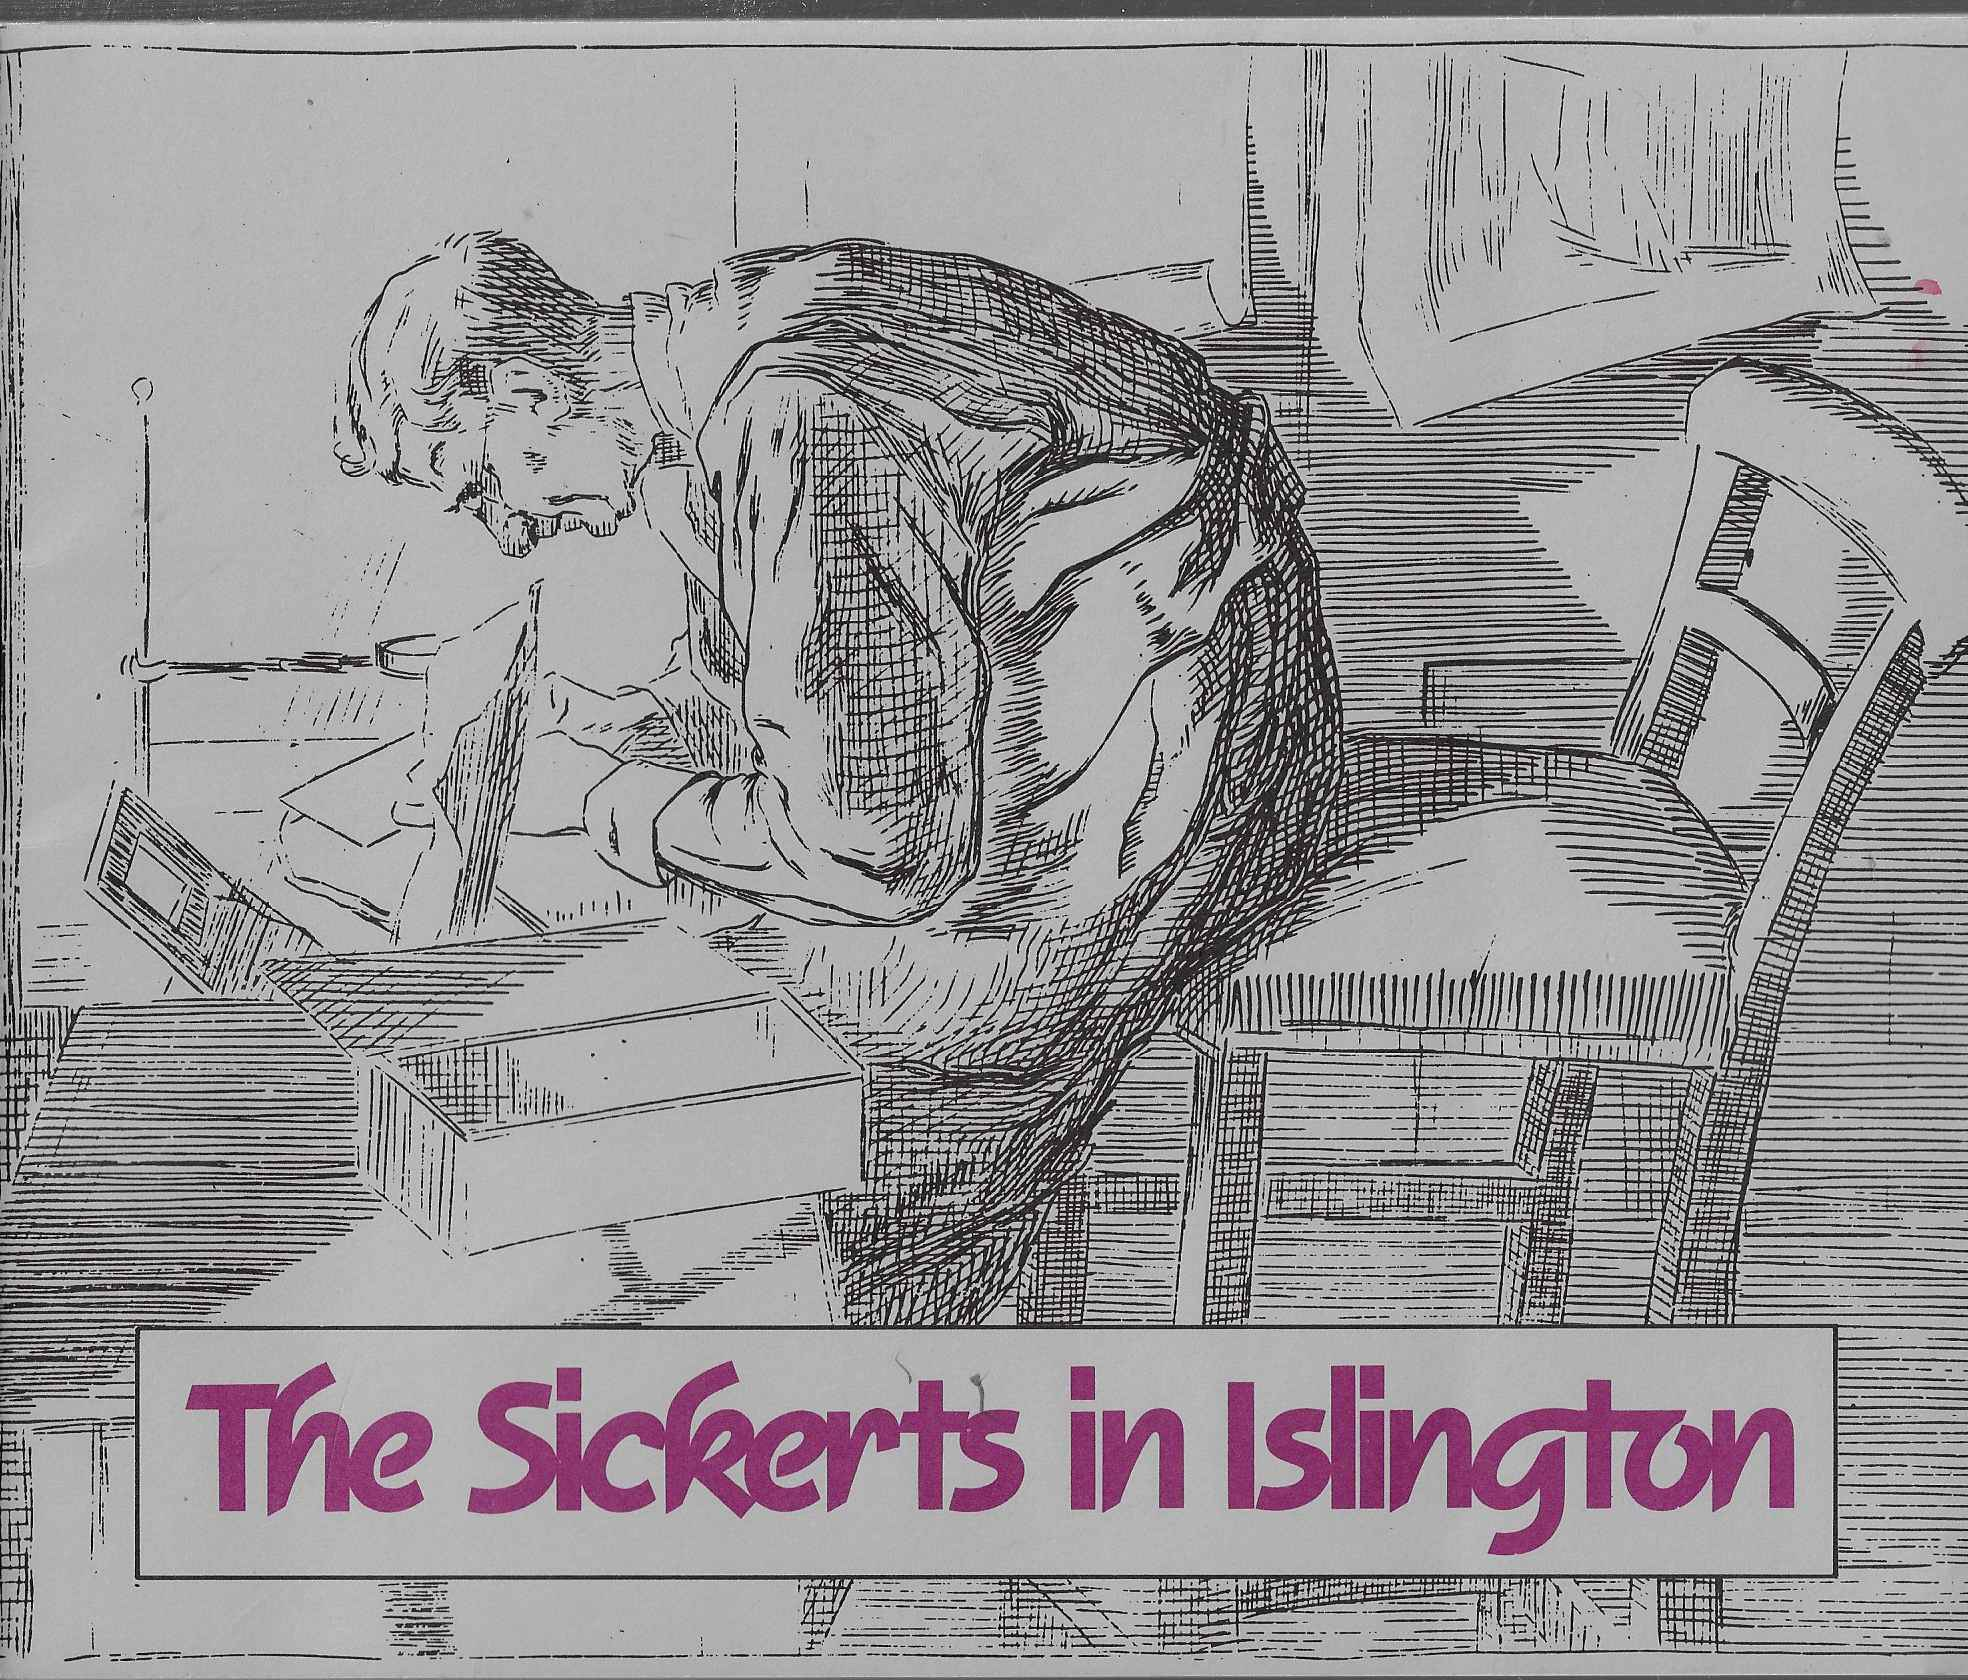 Image for The Sickerts in Islington Catalogue of the Works of Walter Sickert, Thrse Lessore, and Thier Families in Islington Libraries Local History Collection